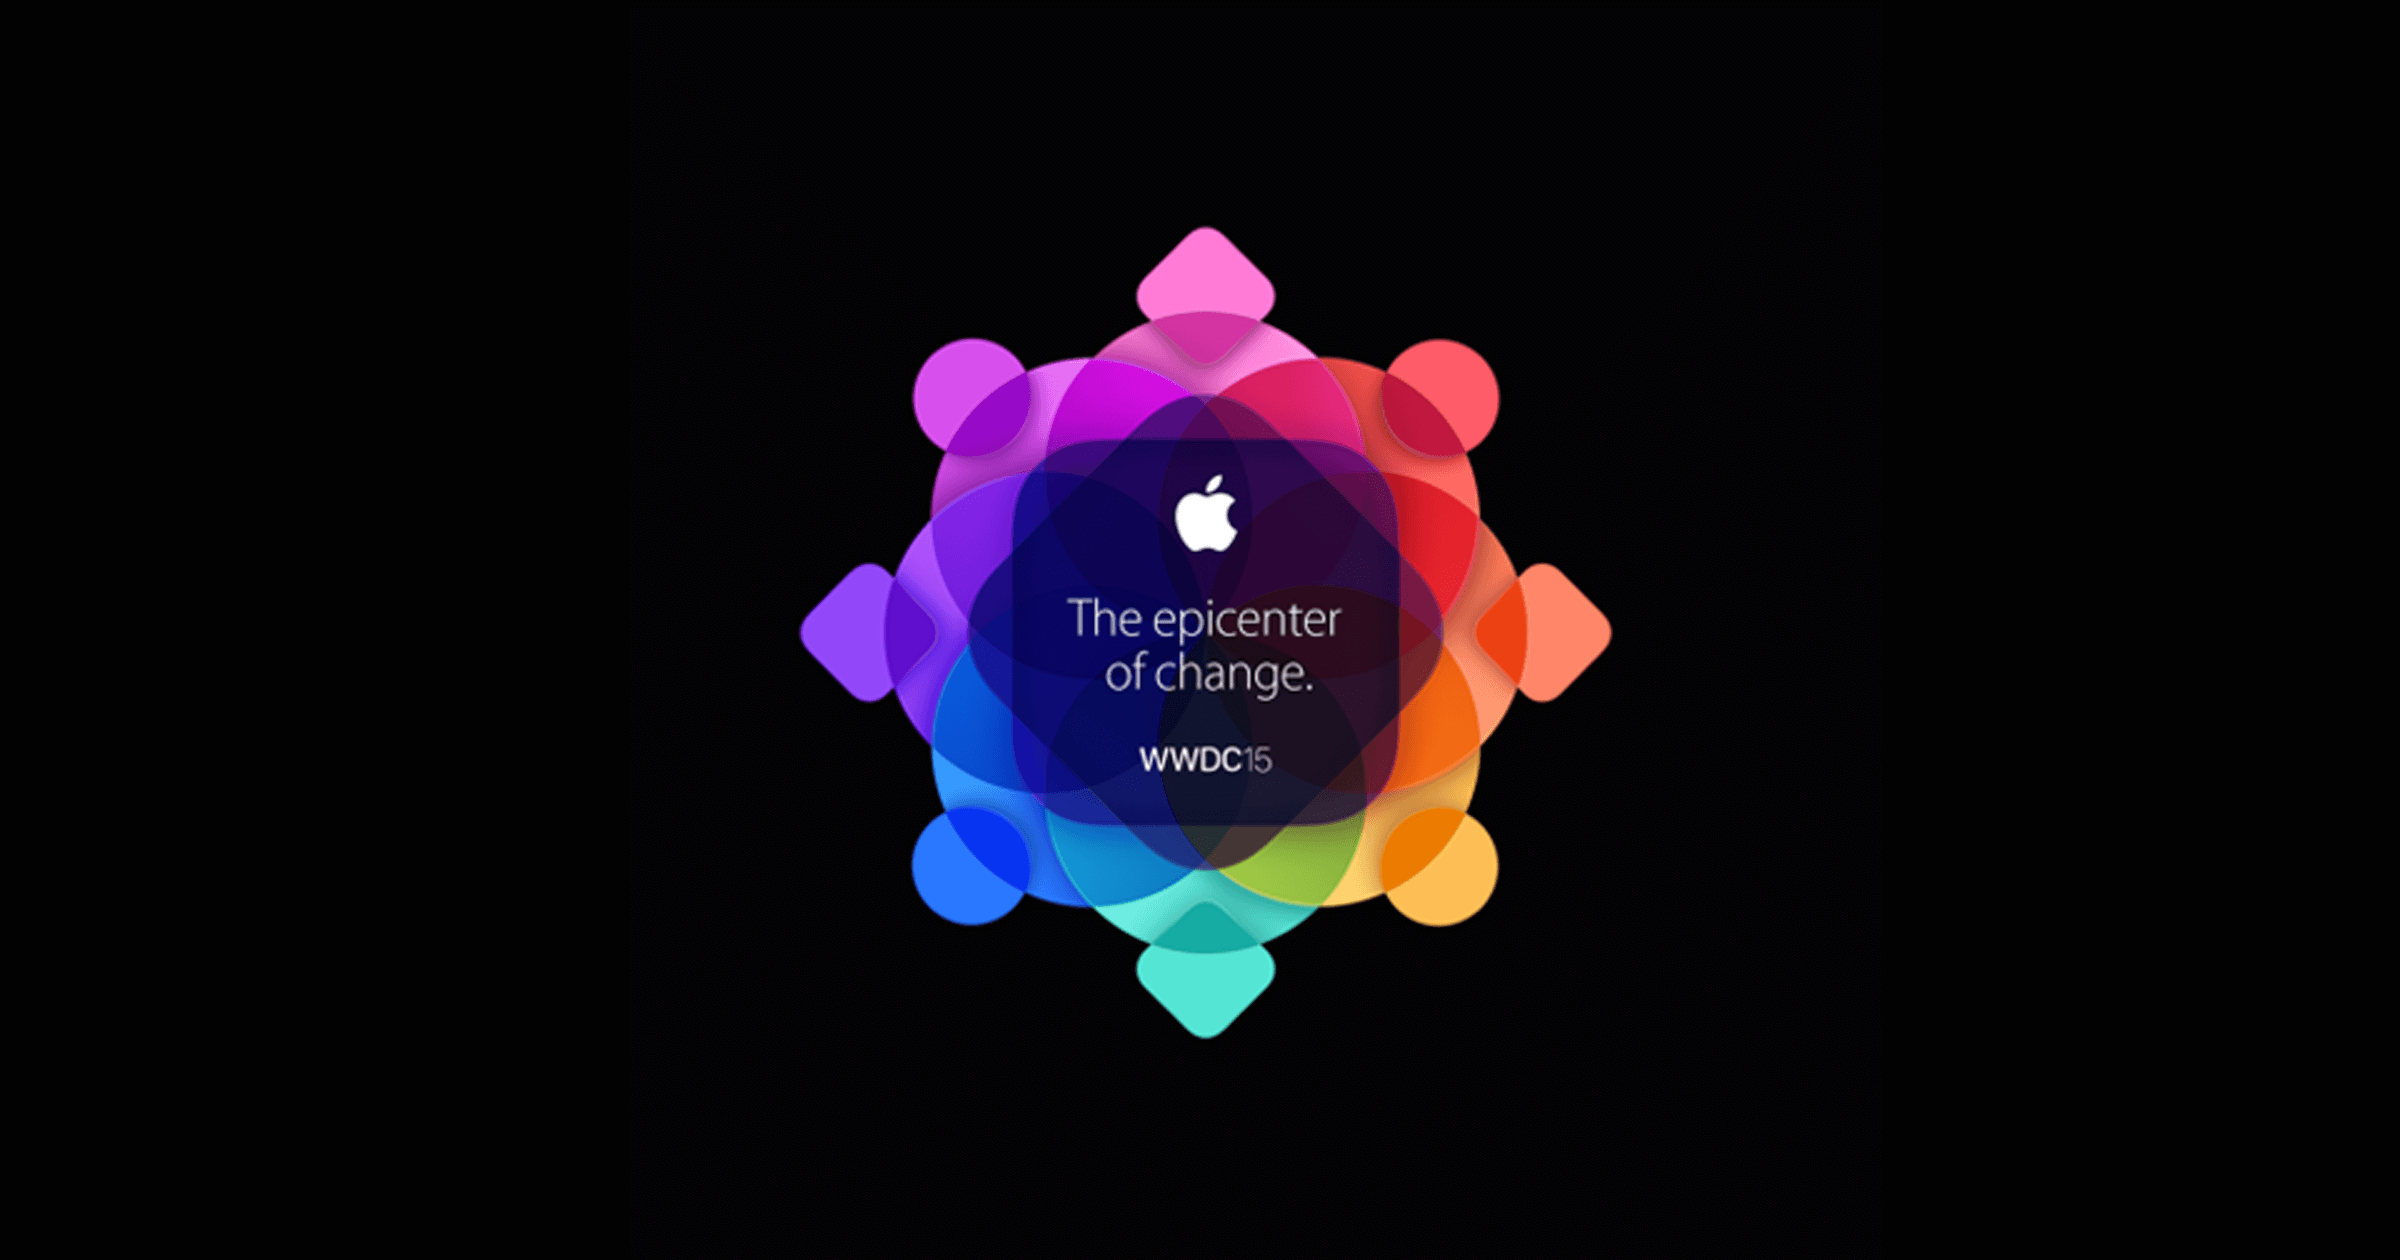 WWDC The Epicenter of change